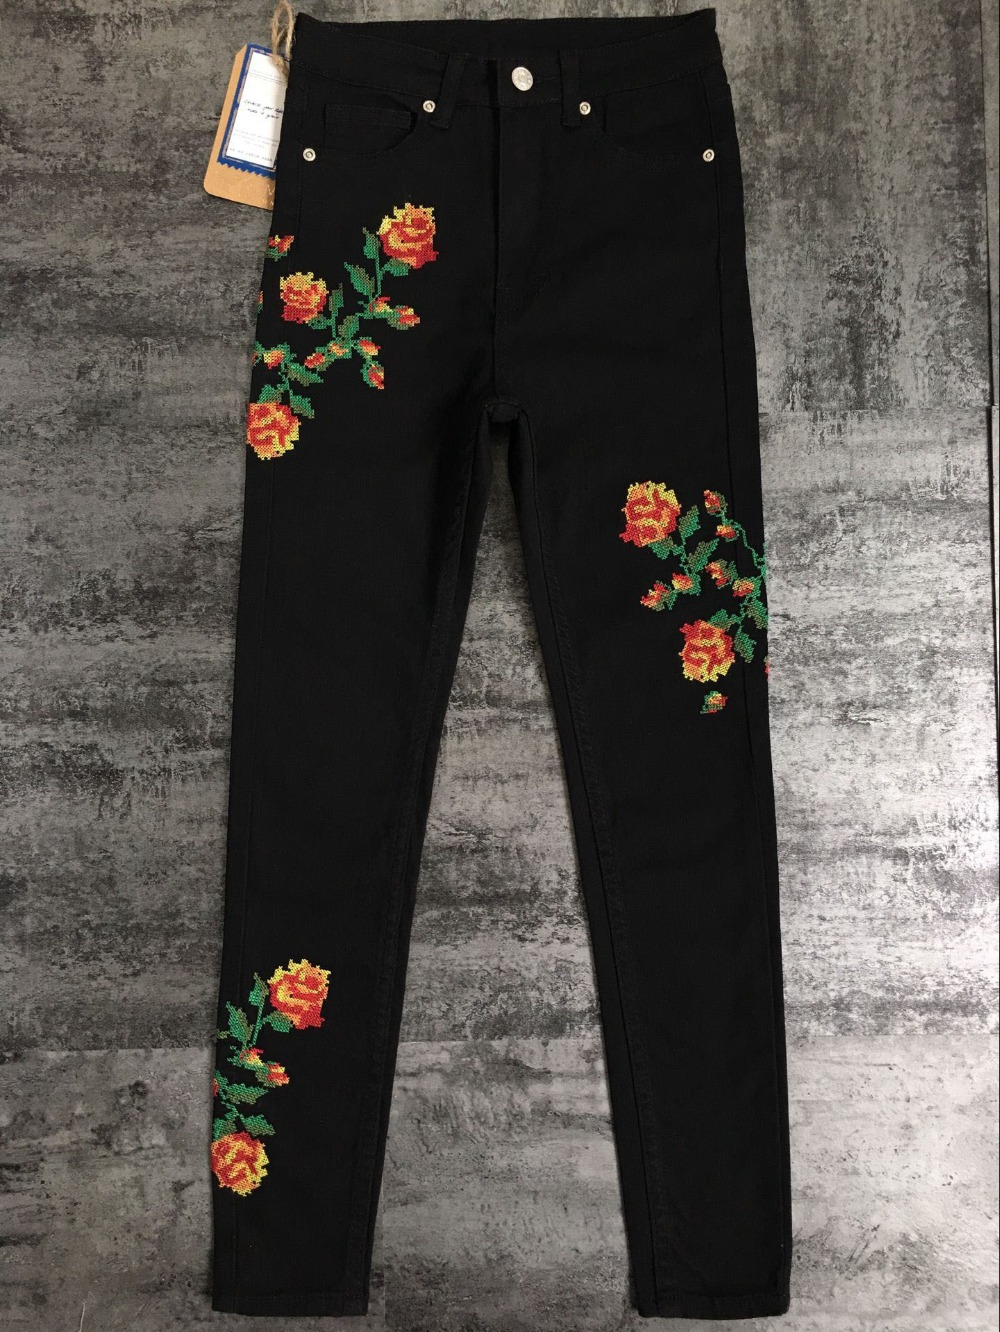 2017 European and American women hot high waist Slim stretch front and rear side cross embroidery roses cowboy pants pants pants (13)